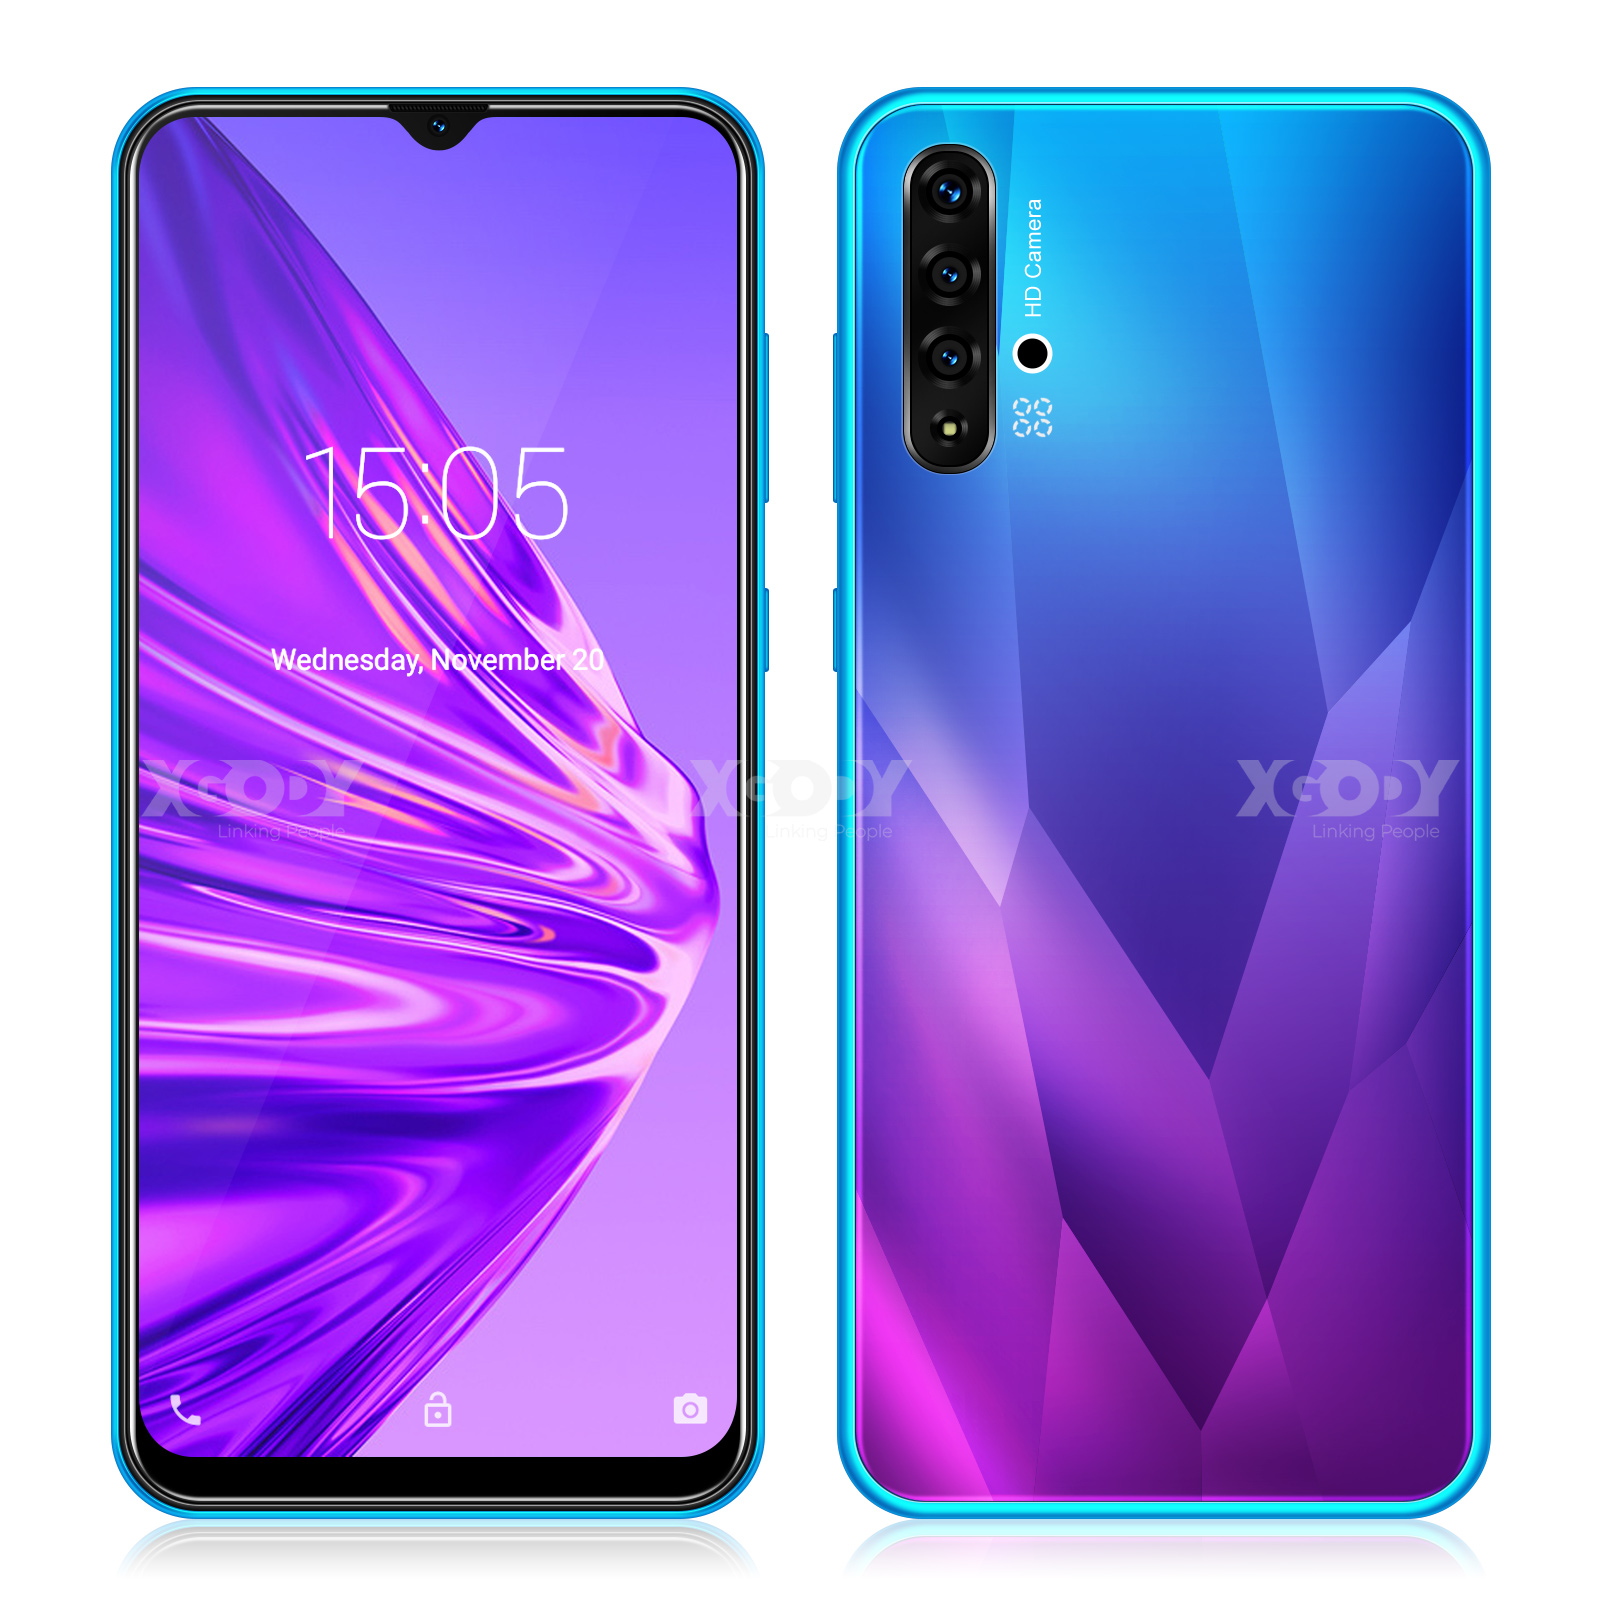 "XGODY A50 3G Smartphone 6.5"" 19:9 Android 9.0 1GB RAM 4GB ROM 5MP Camera Quad Core Dual SIM GPS WiFi Mobile Phone CellPhone"